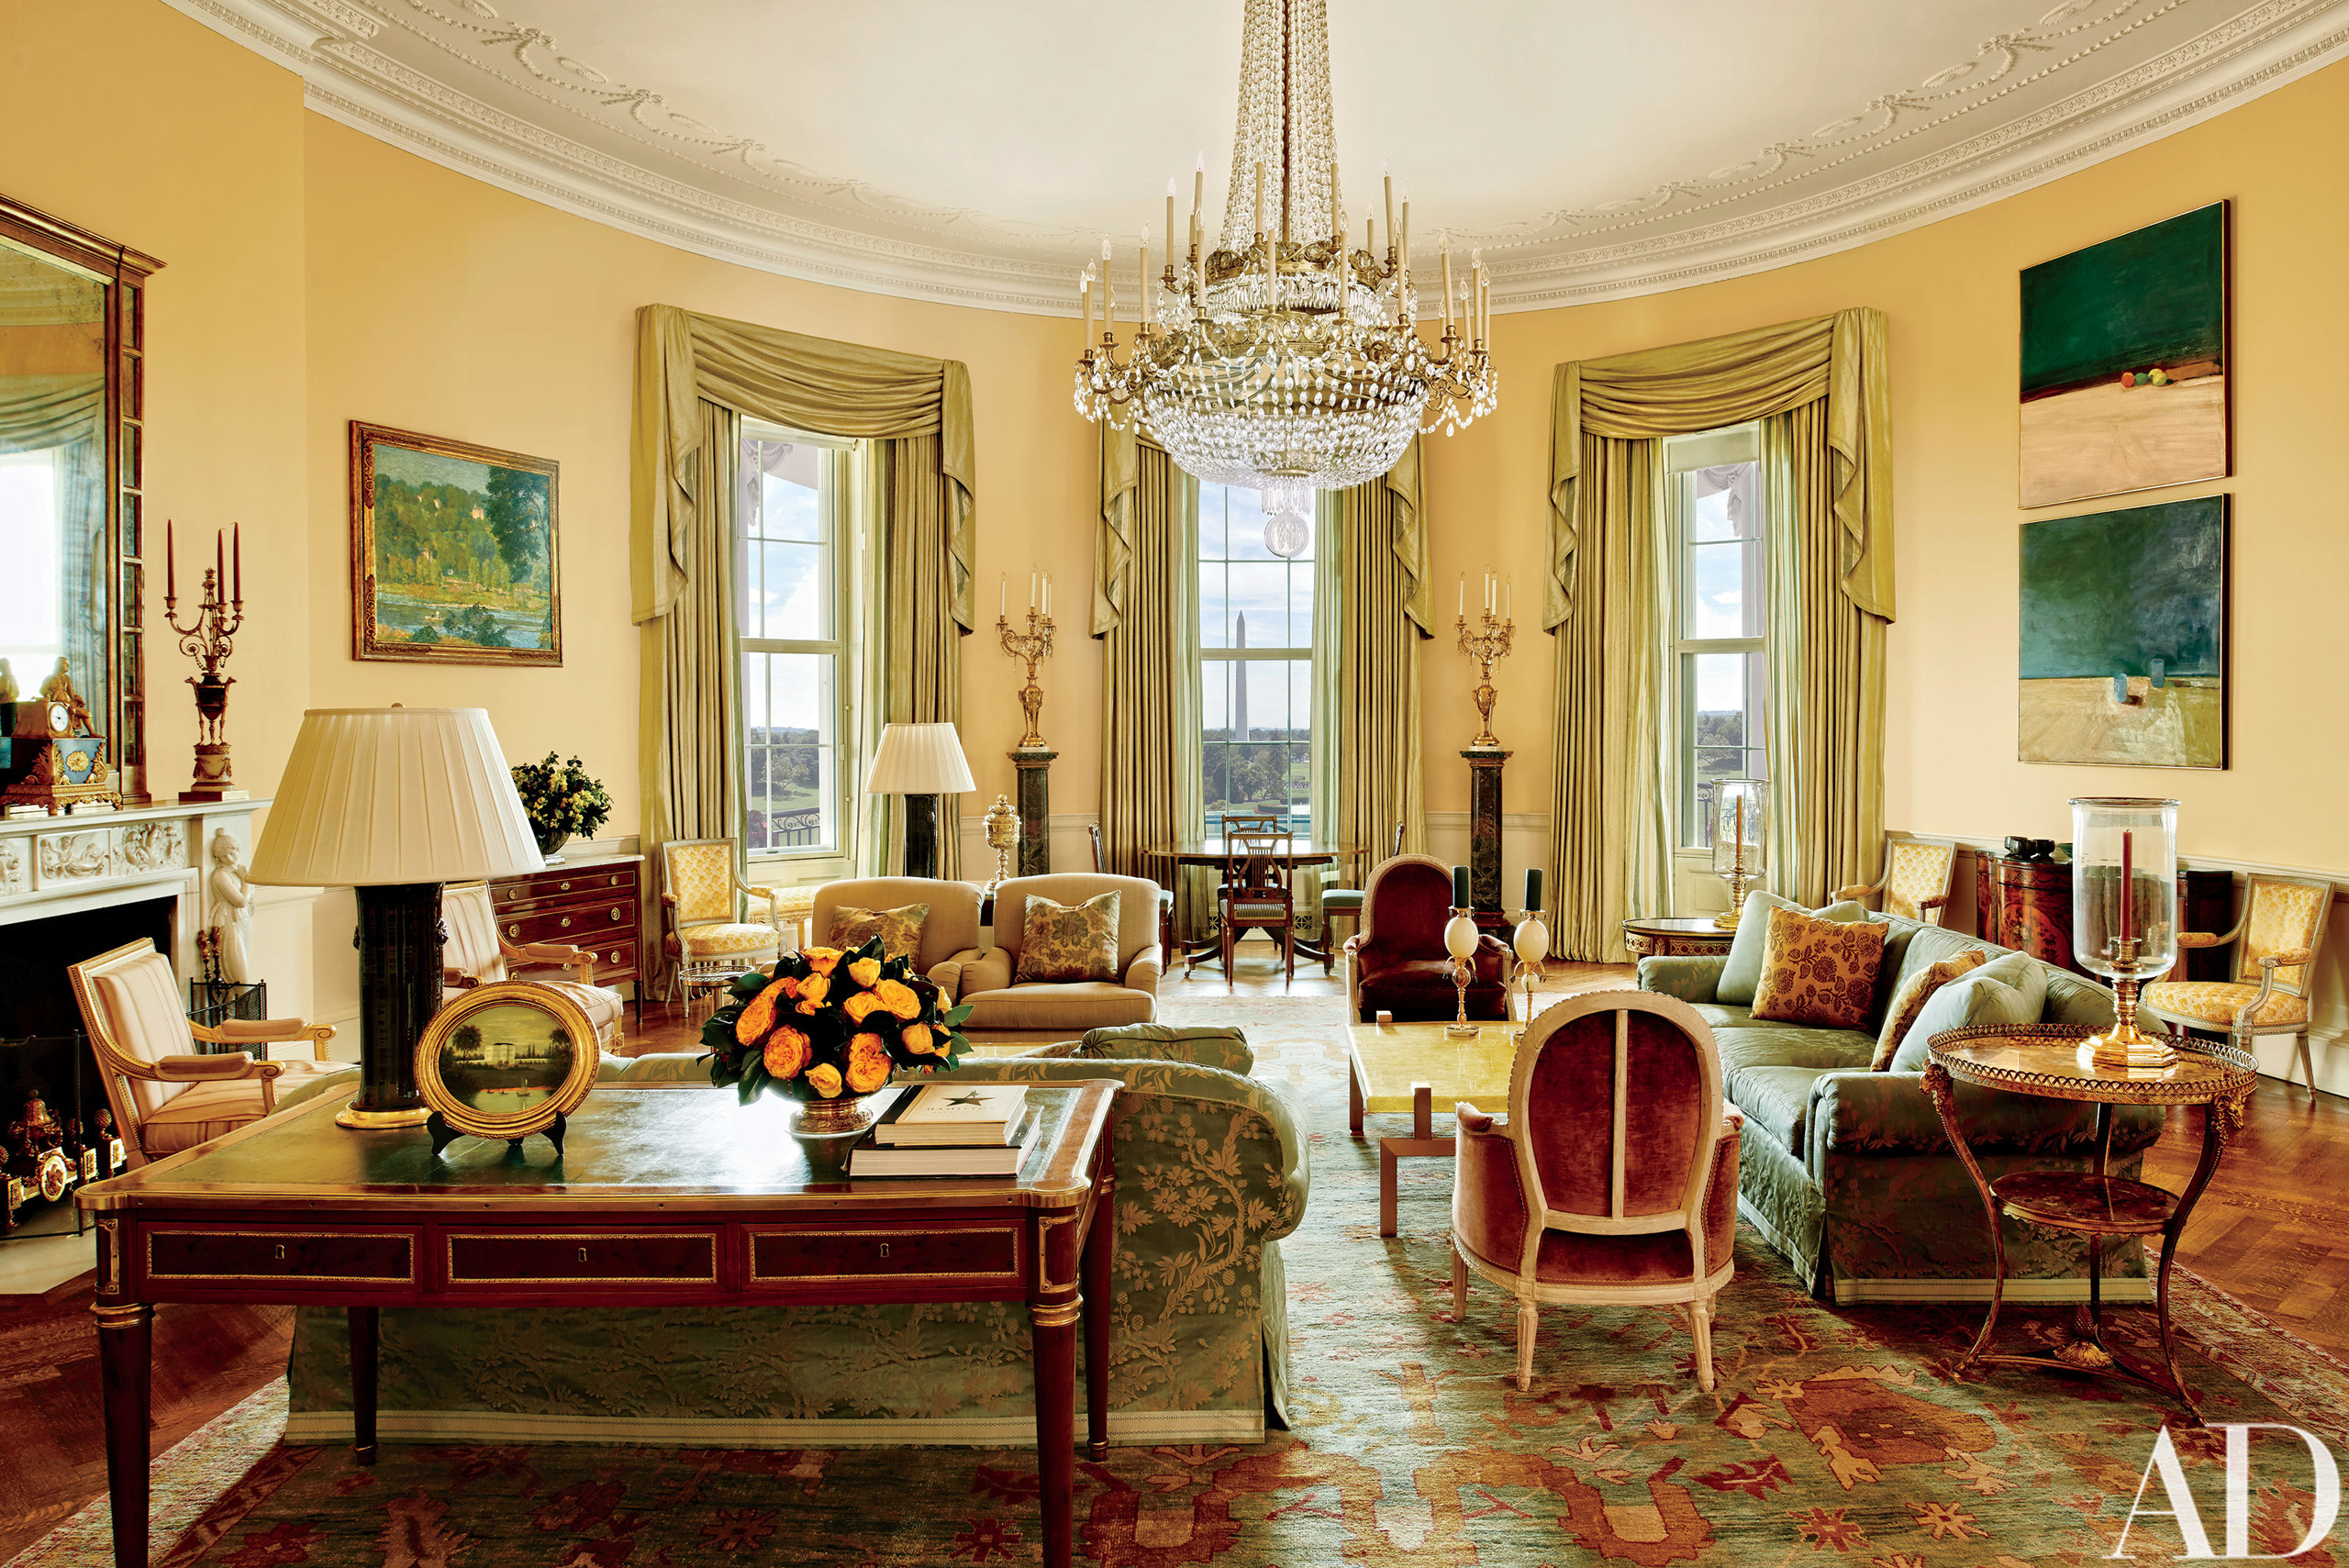 The Yellow Oval Room in the White House in Washington. Designer Michael S. Smith specified a Donald Kaufman paint for the Yellow Oval Room. Artworks by Paul Cézanne and Daniel Garber flank the mantel. Smith mellowed the Yellow Oval Room with smoky browns, greens, golds, and blues. The 1978 Camp David peace accords were signed at the antique Denis-Louis Ancellet desk, front left.